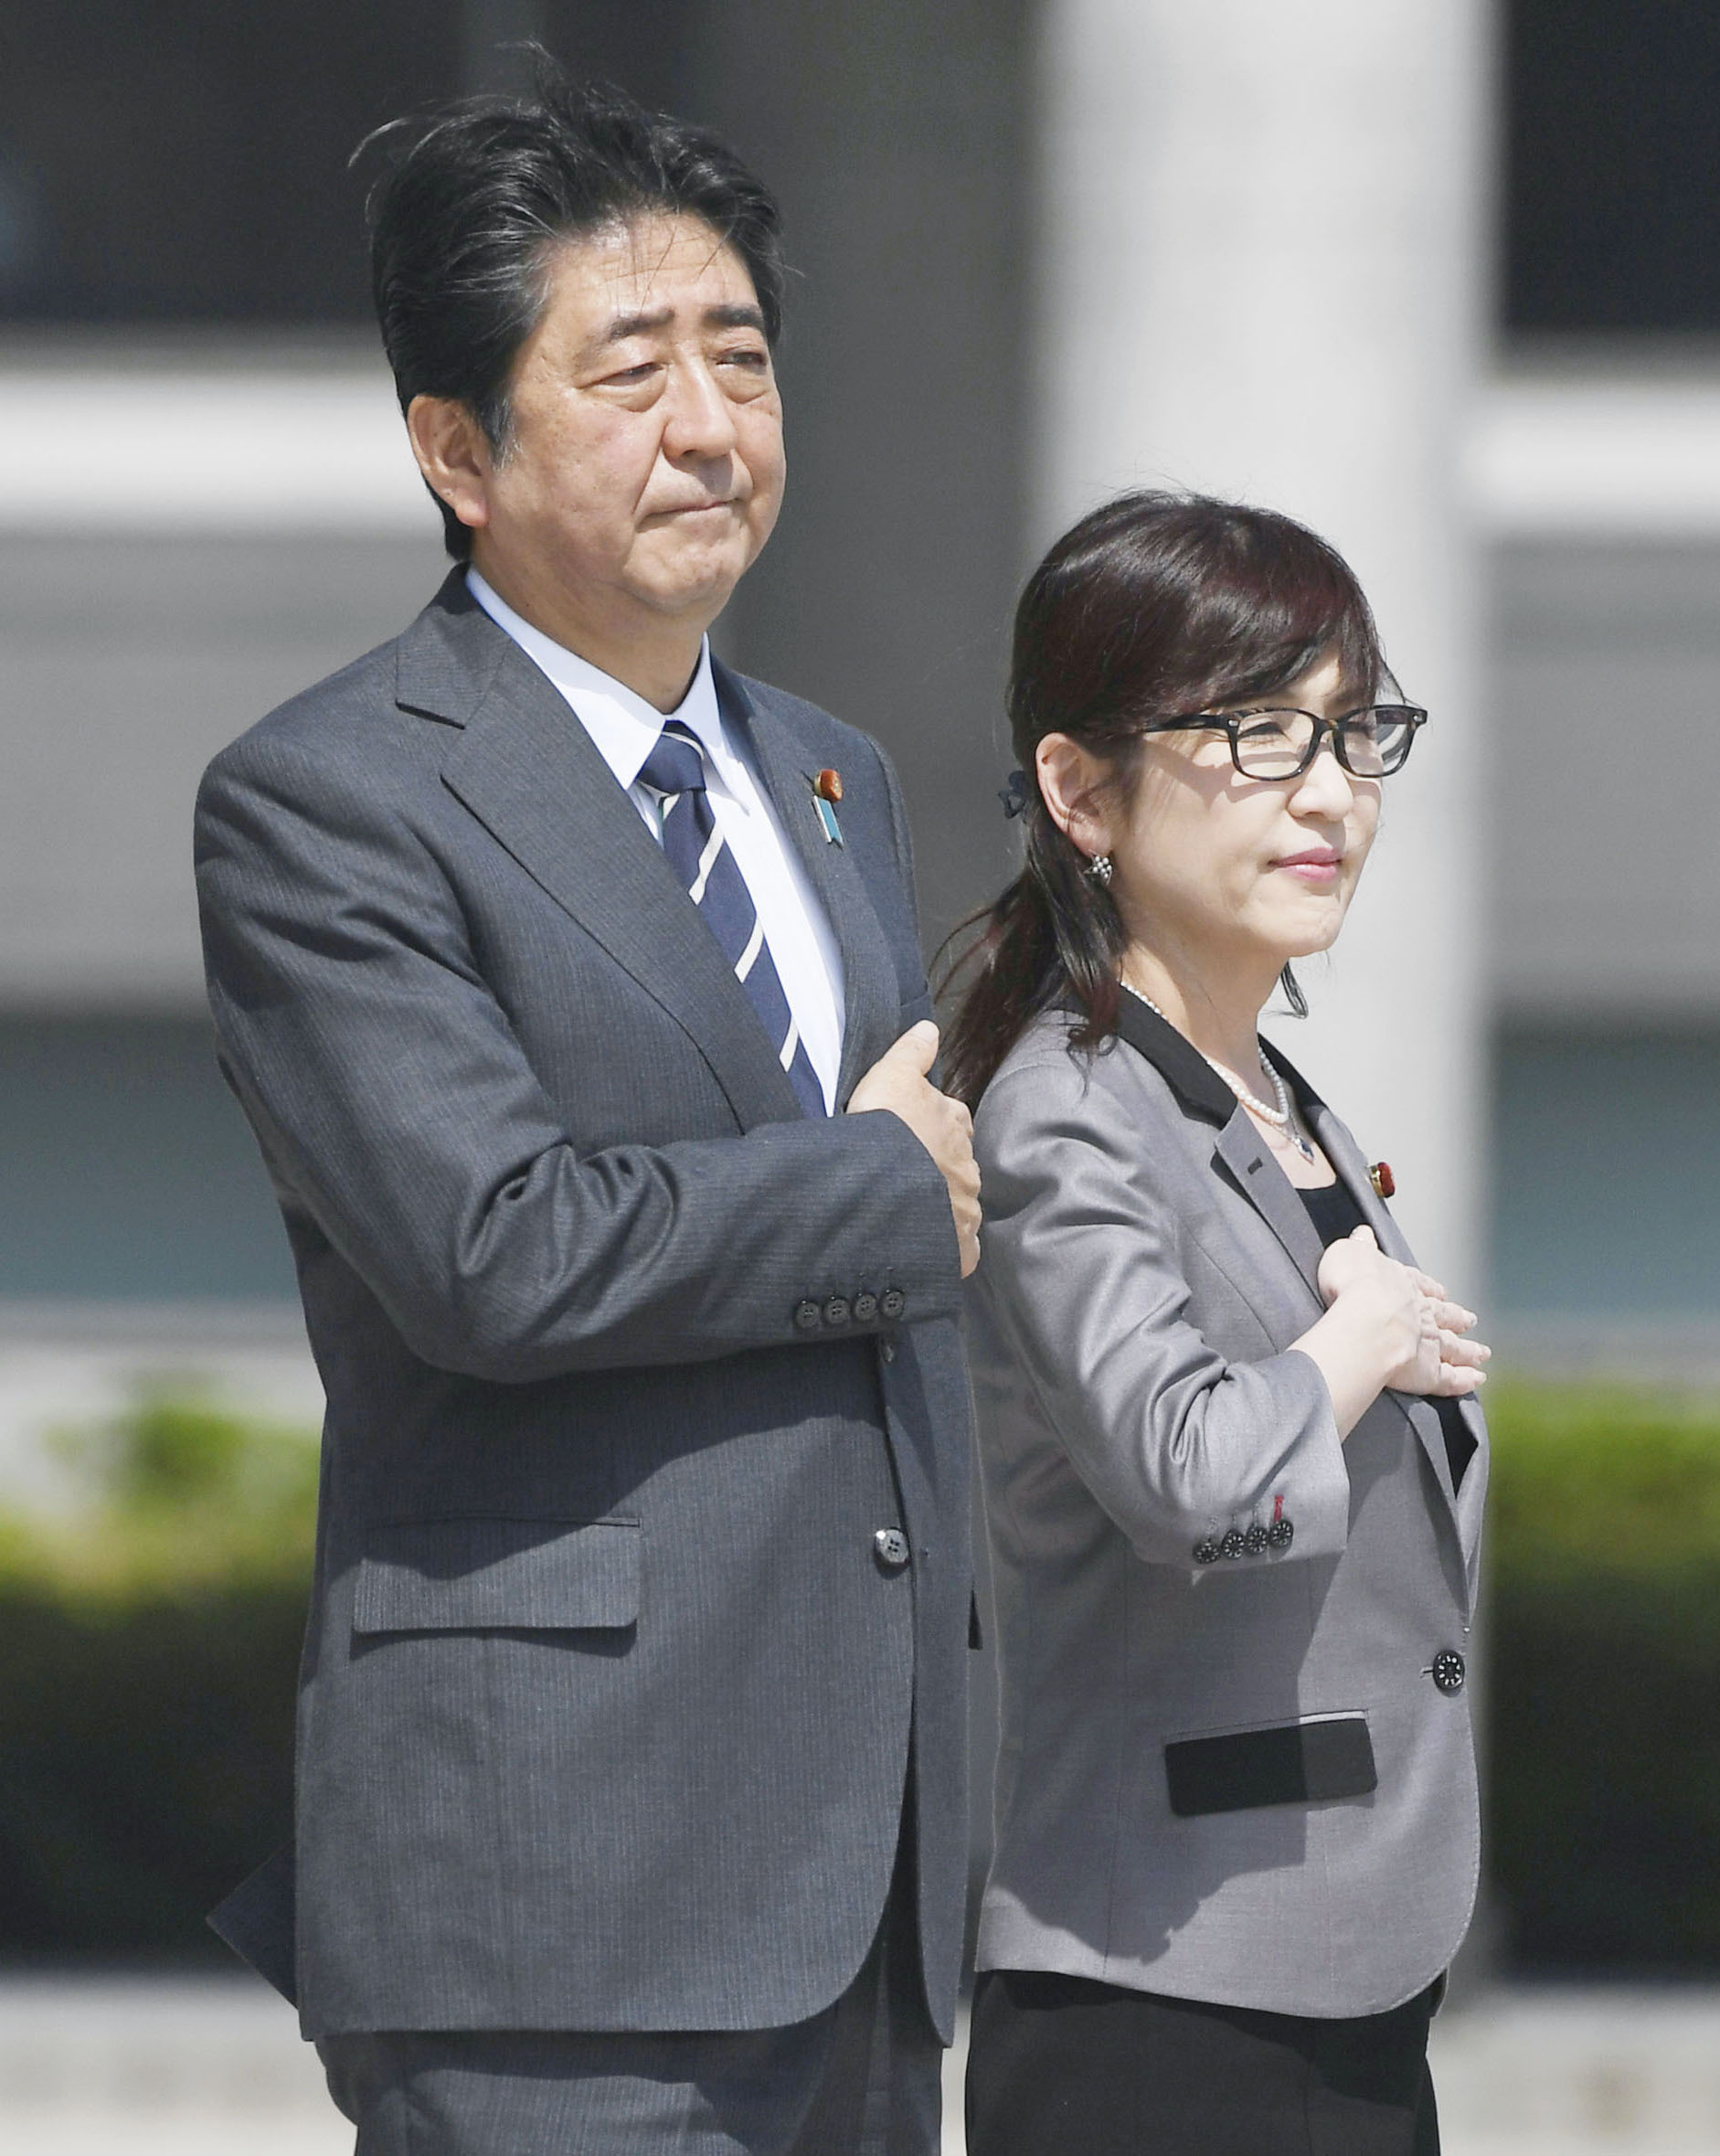 Japan's defense chief Inada resigns over data coverup claims